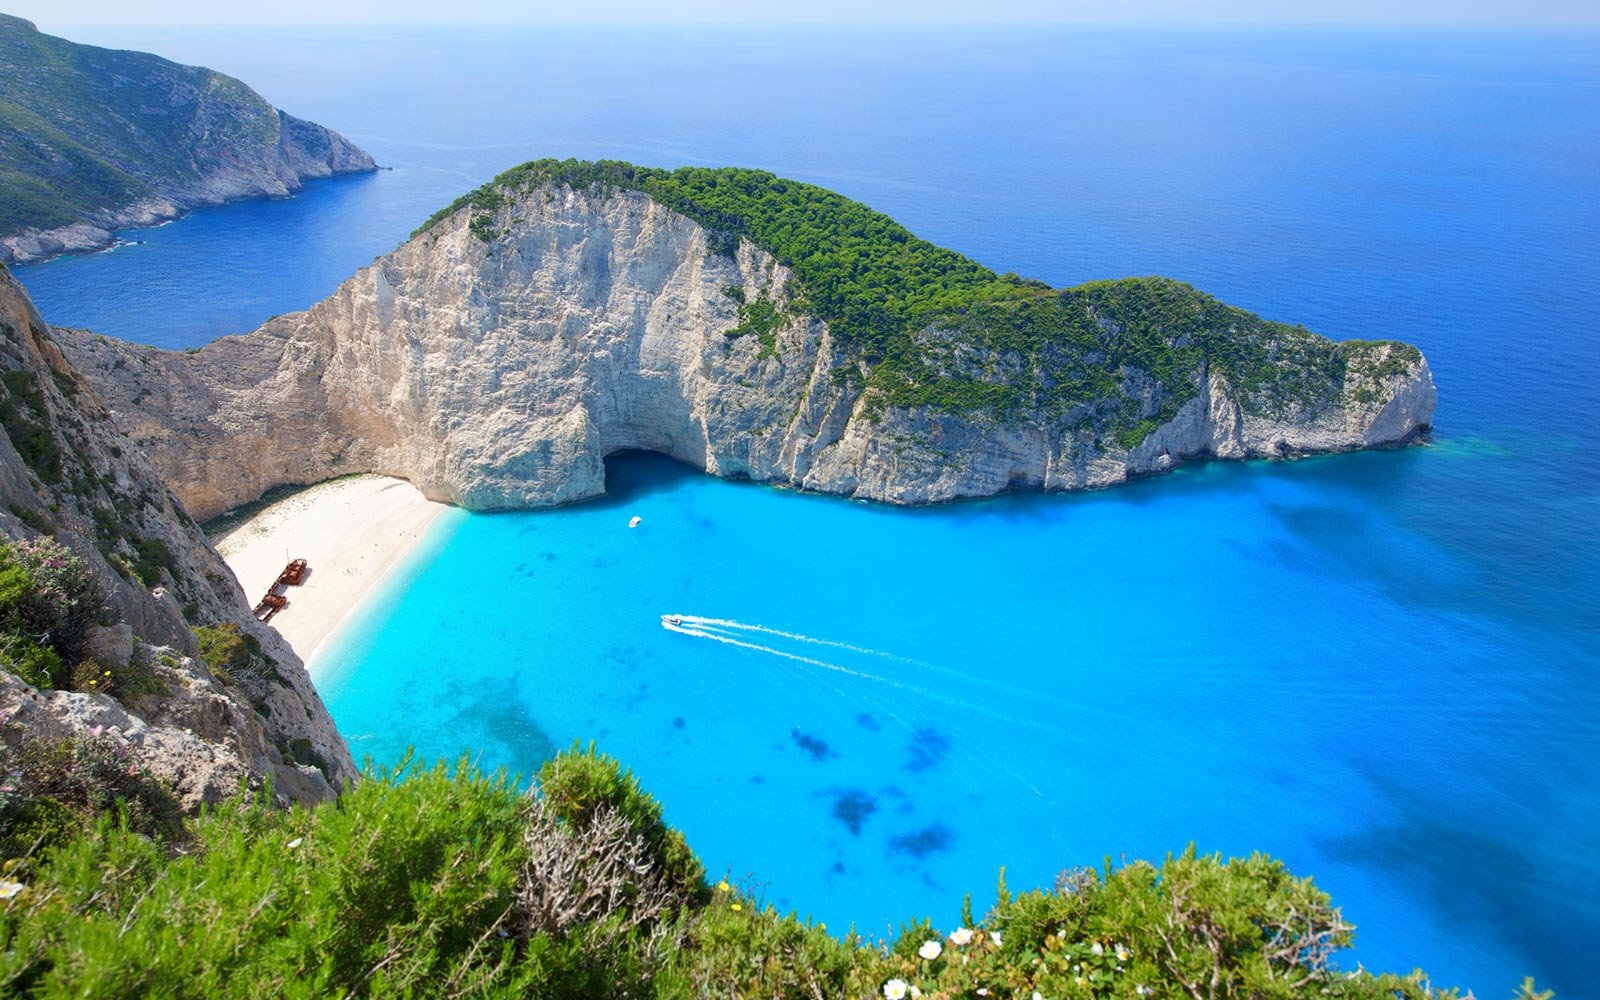 zakynthos-ionian-islands-greece-GREEKISLES1216